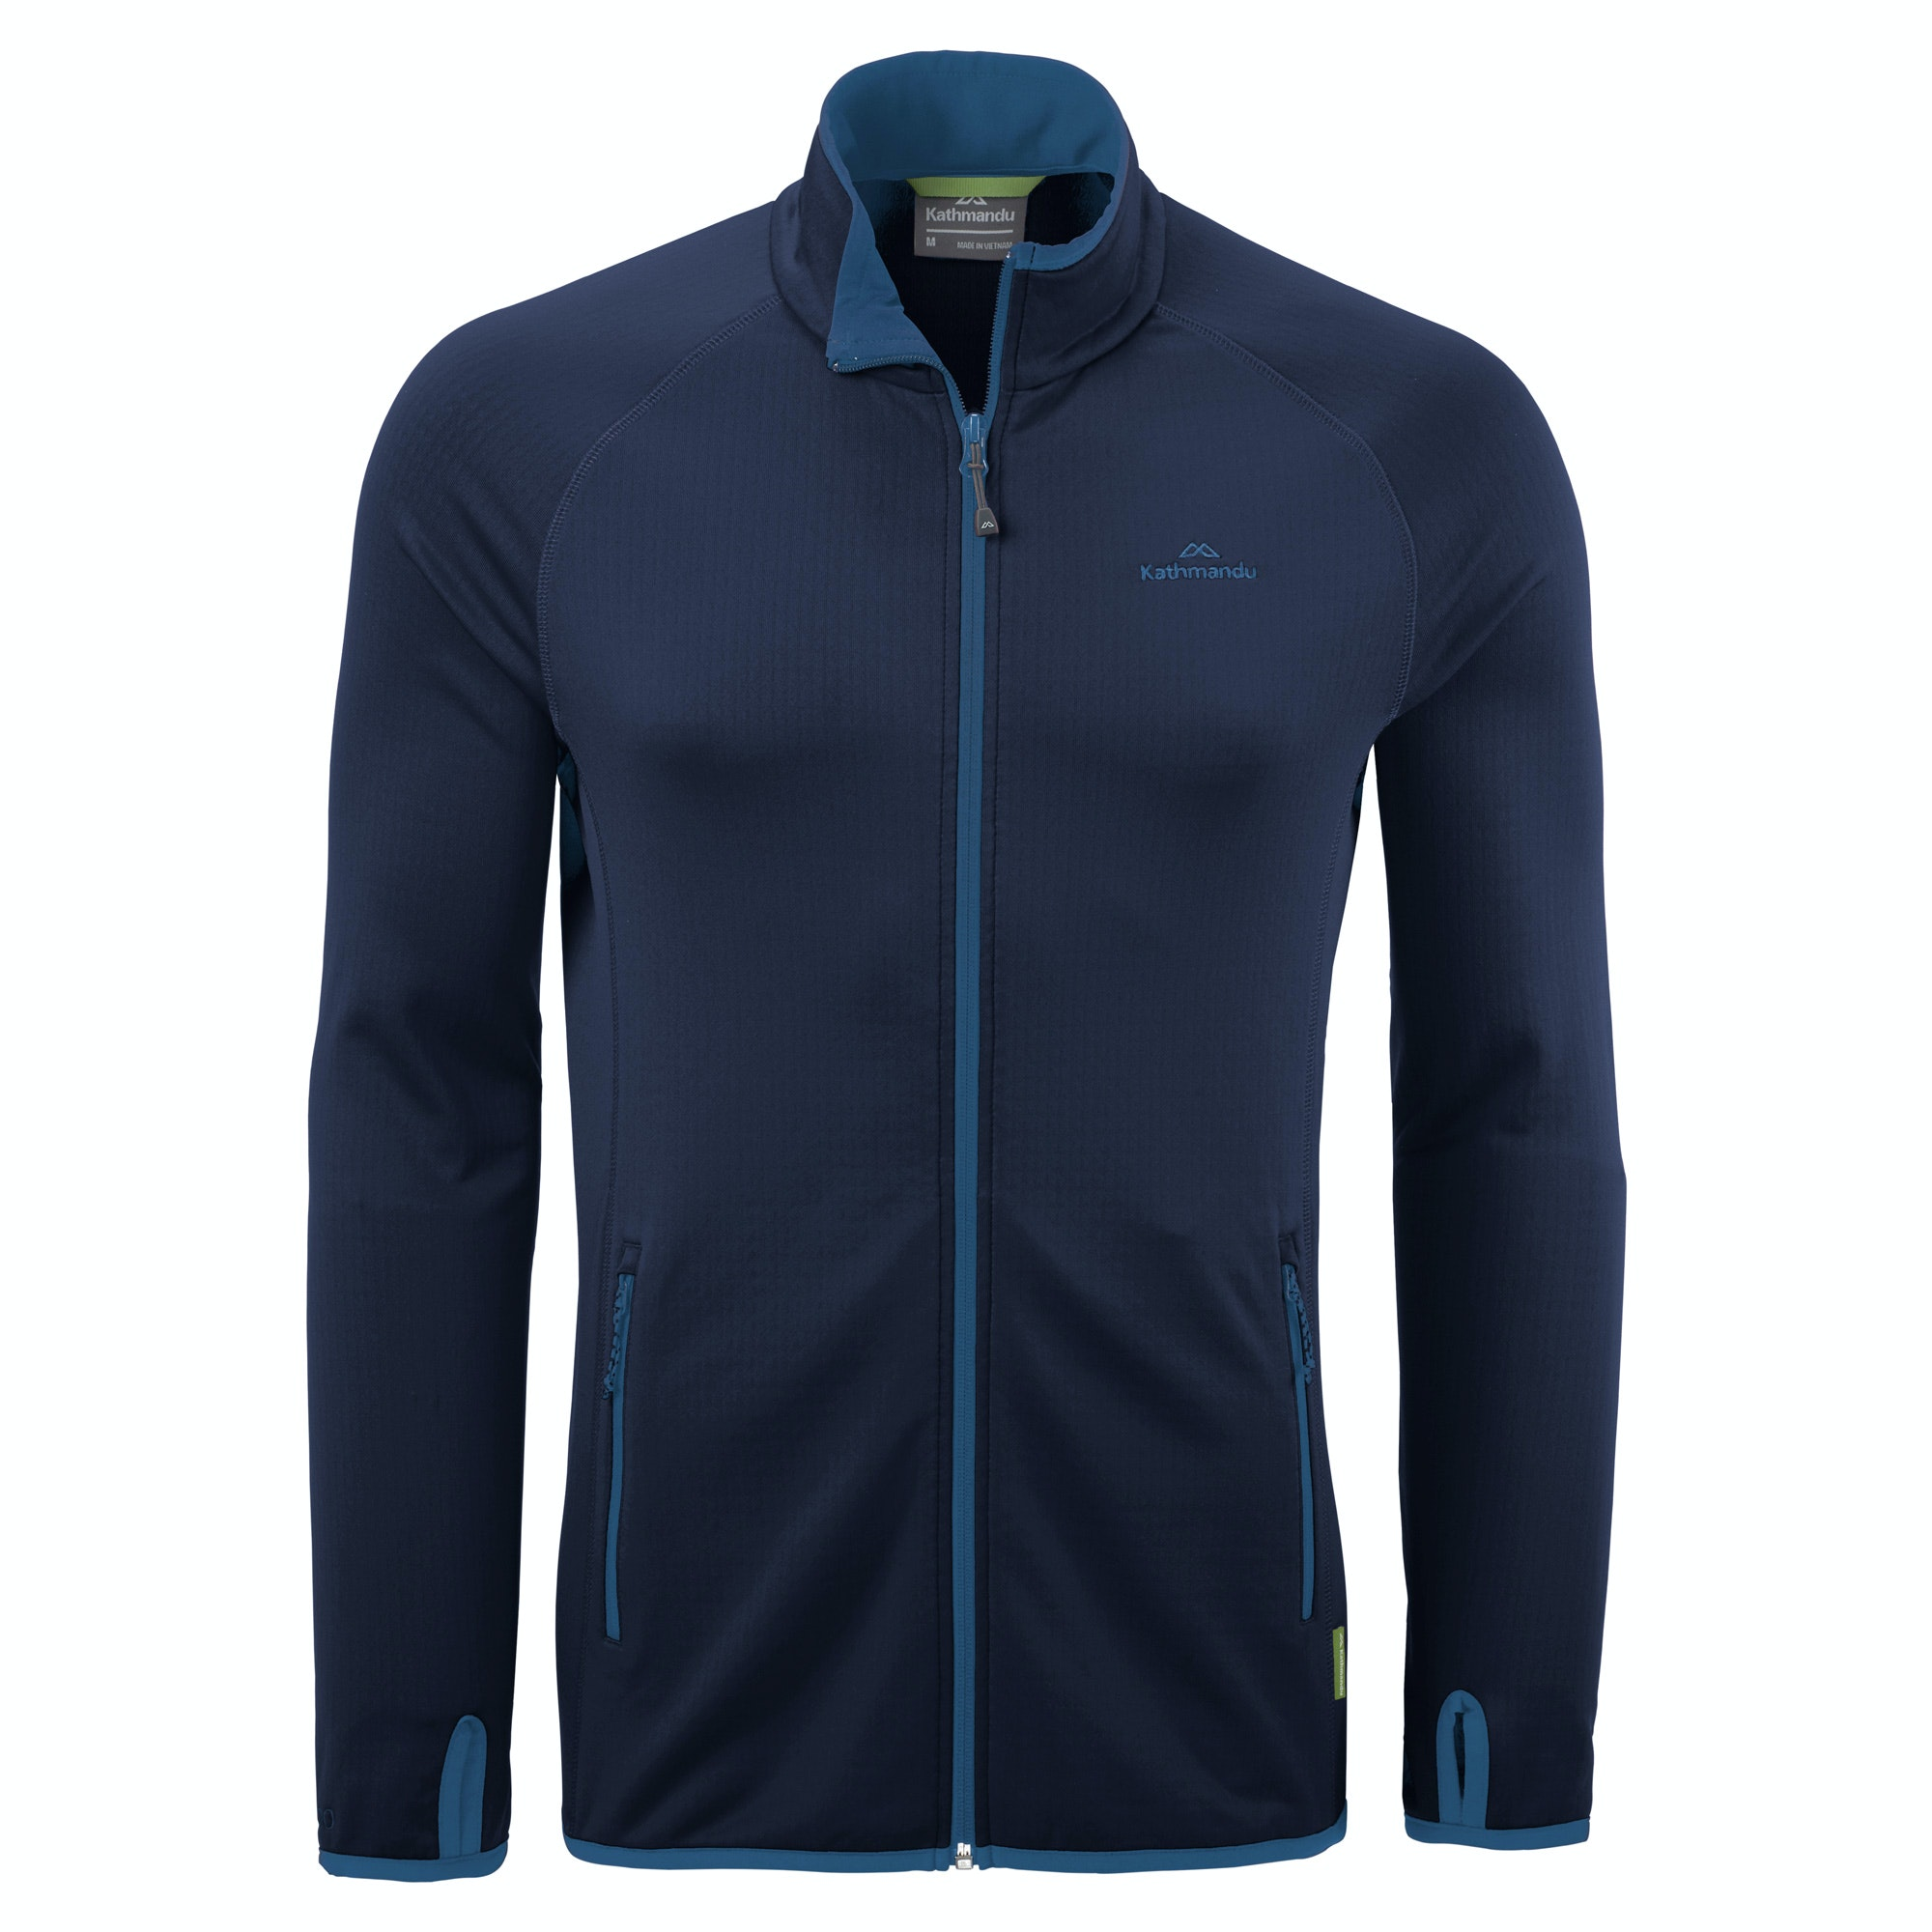 And if you are looking for a combination fleece/shell jacket, check out The Best Softshell Jacket for Women Review. The